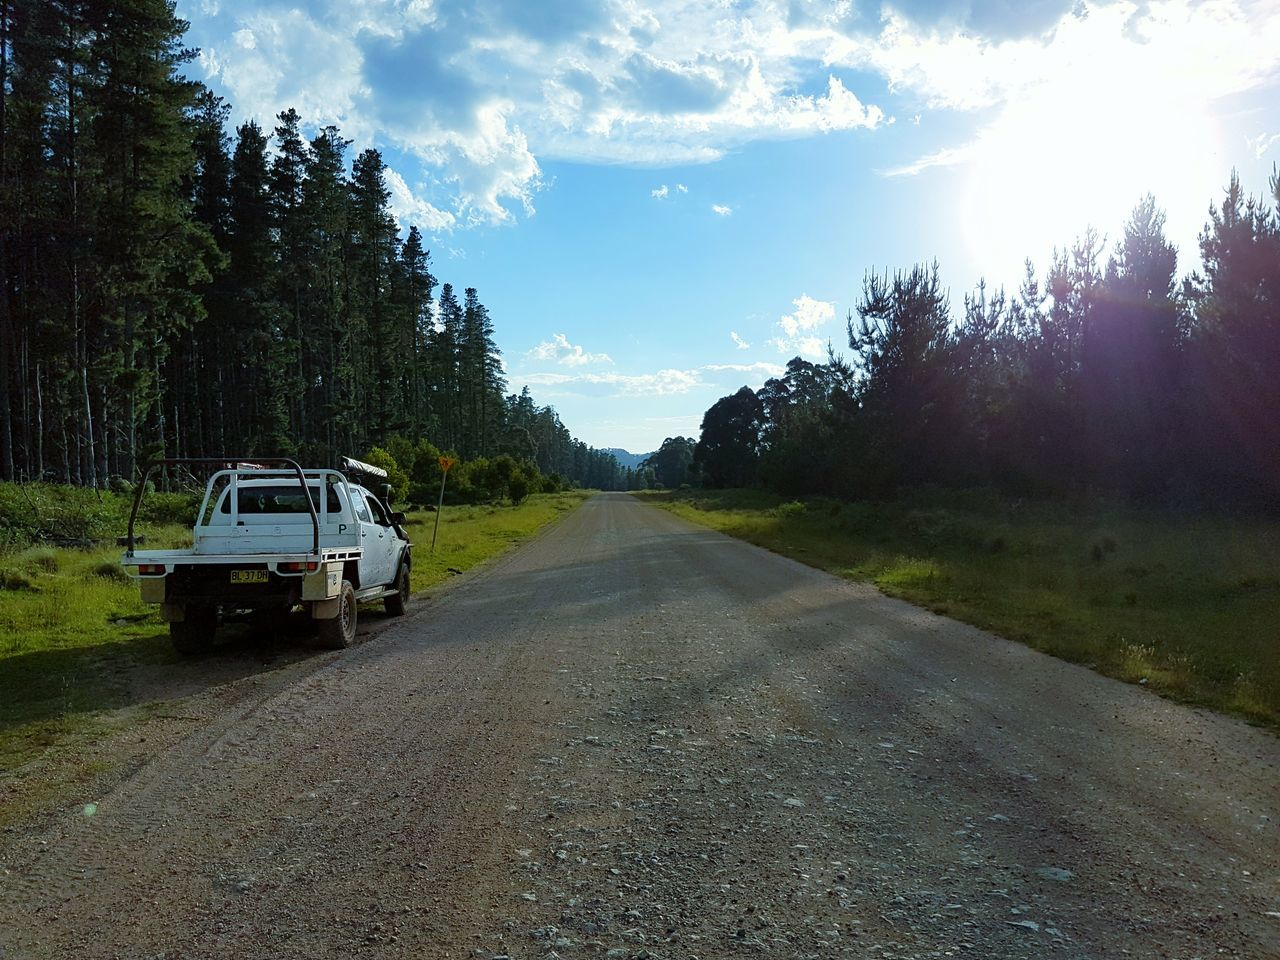 Transportation Mode Of Transport Road Car Driving Tree The Way Forward Wet Land Vehicle Nature Sky No People Outdoors Day 4wd 4WD Action 4x4 4x4ing 4x4 Travel 4wding 4wheeldrive 4w